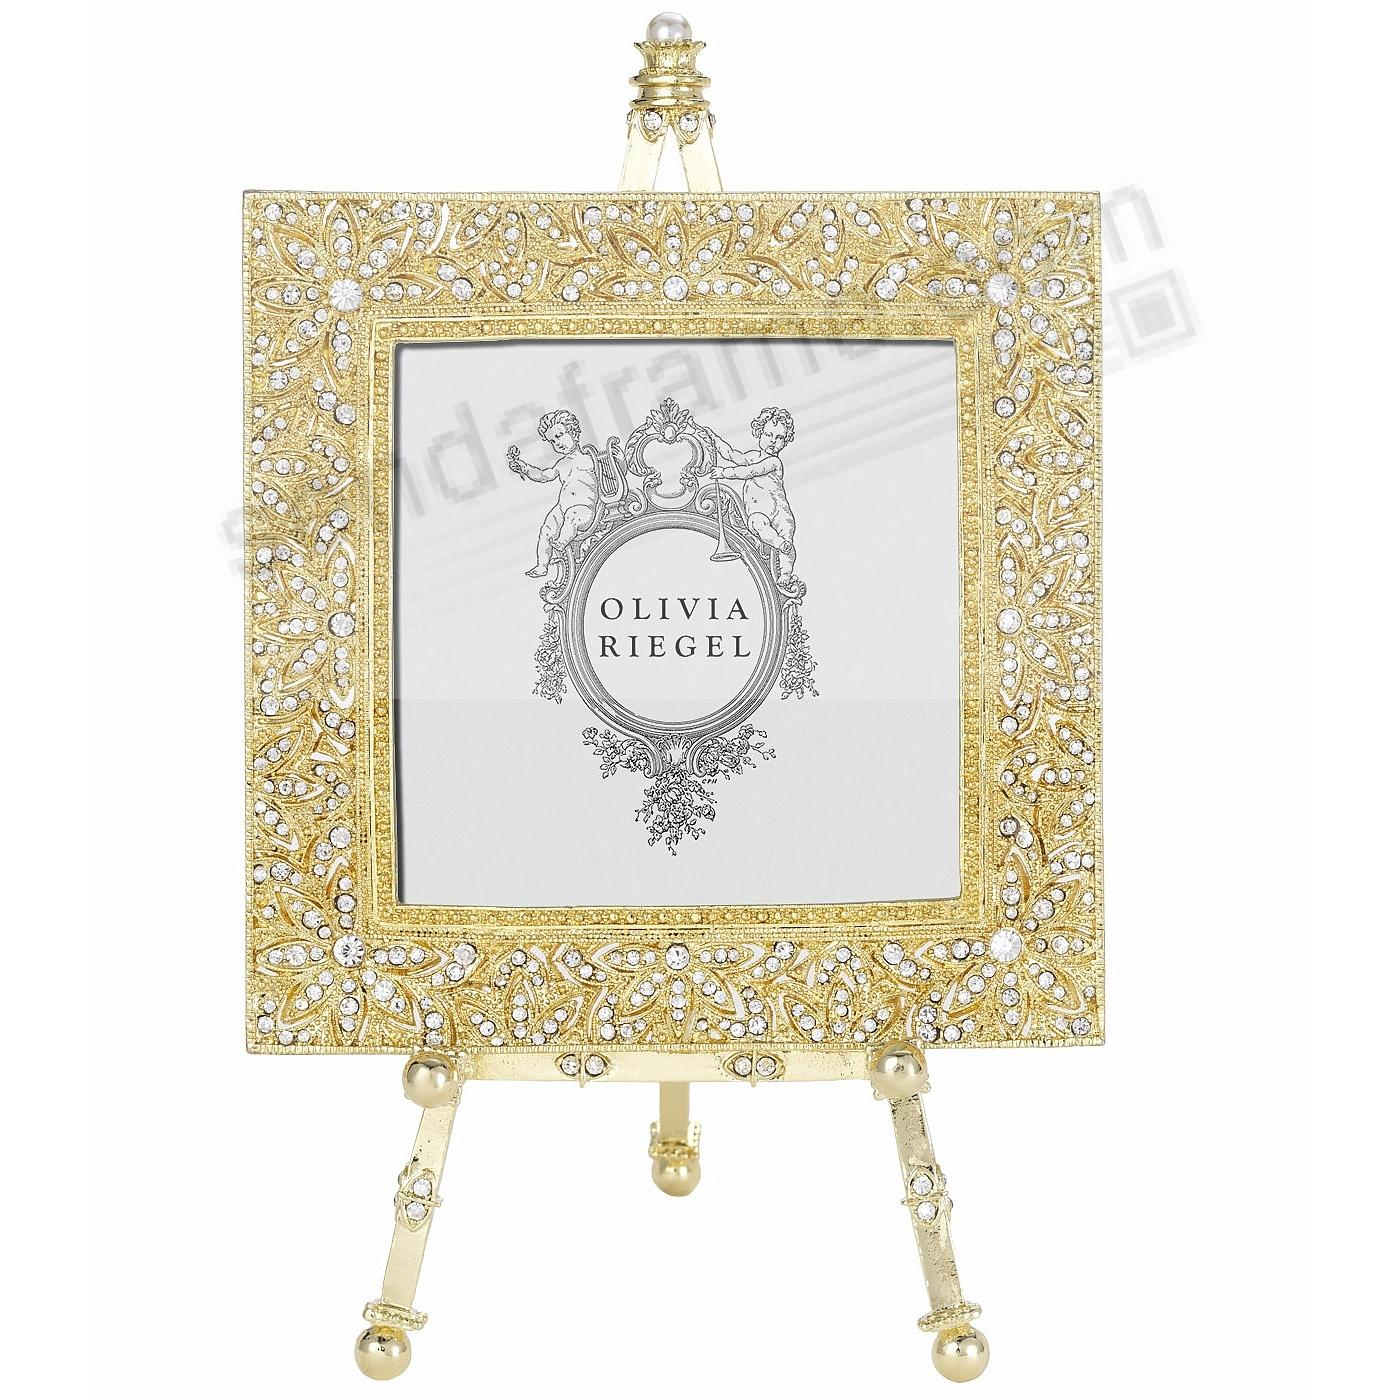 WINDSOR GOLD Austrian Crystal 4x4 w/Easel frame by Olivia Riegel